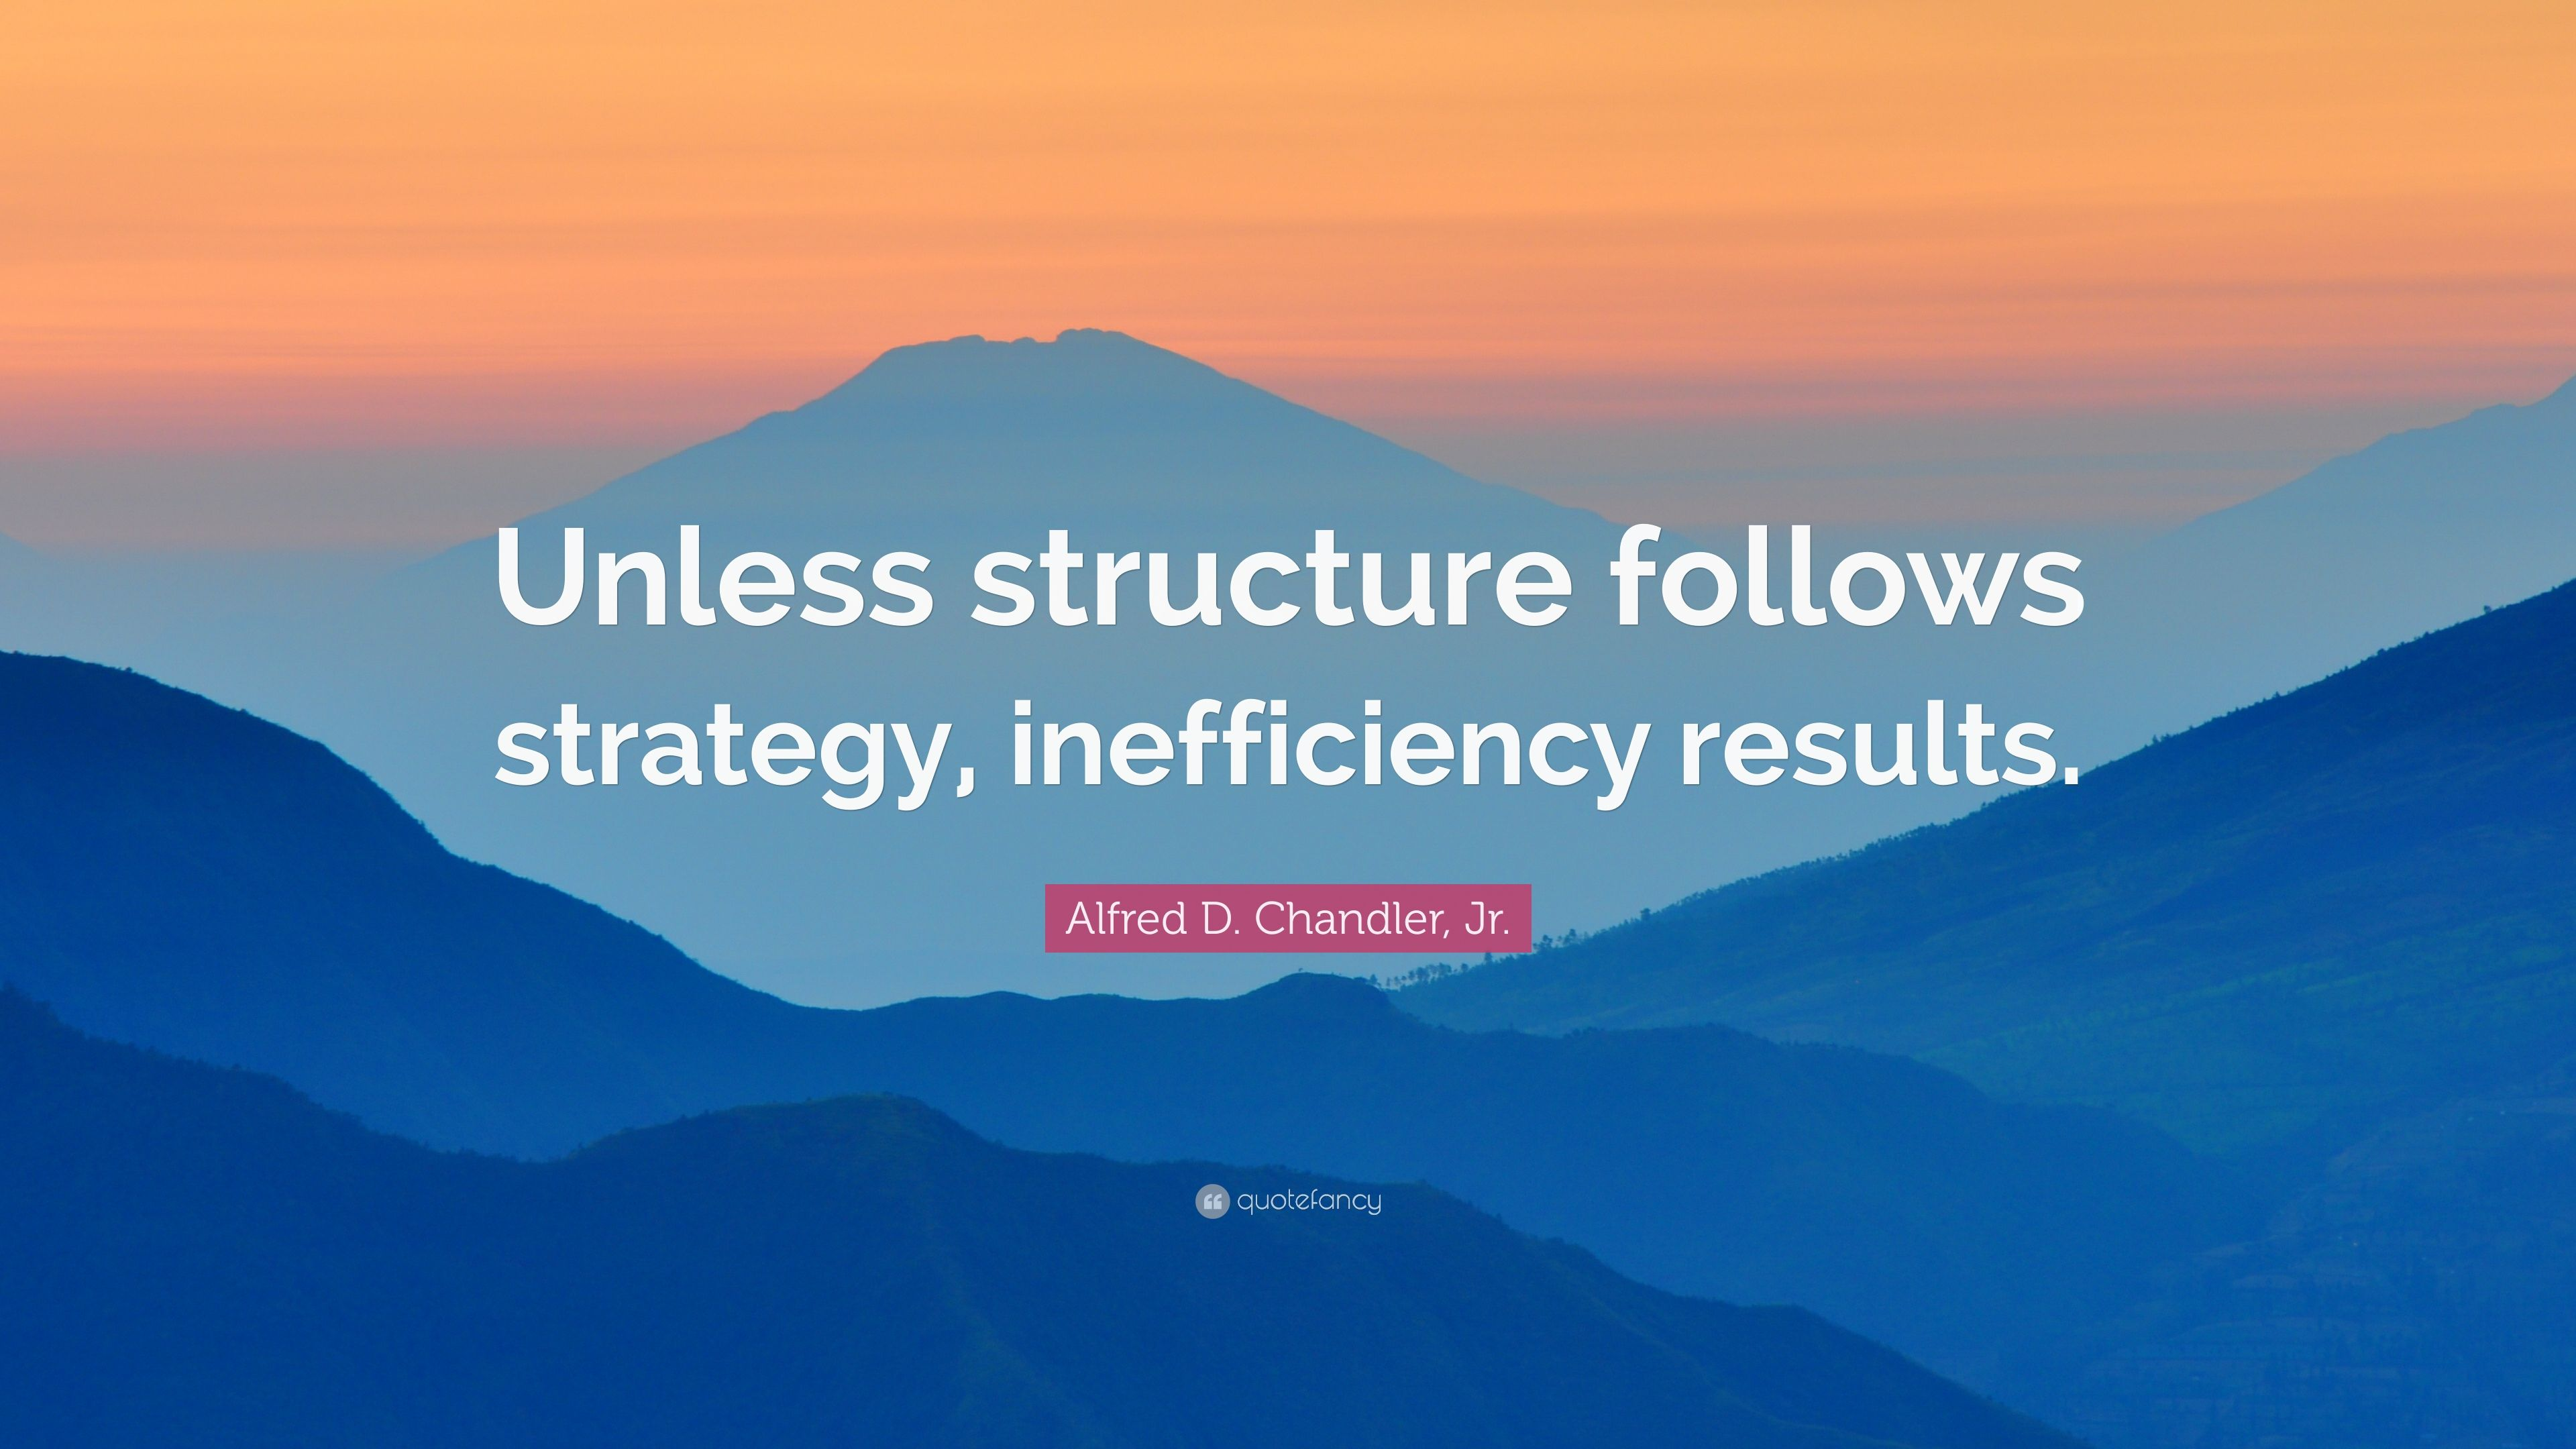 alfred chandler structure follows strategy Strategy and structure: chapters in the history of the american industrial enterprise   alfred dupont, jr chandler, jr alfred d chandler   isbn: 9781587981982   kostenloser versand für alle bücher mit versand und verkauf duch amazon.